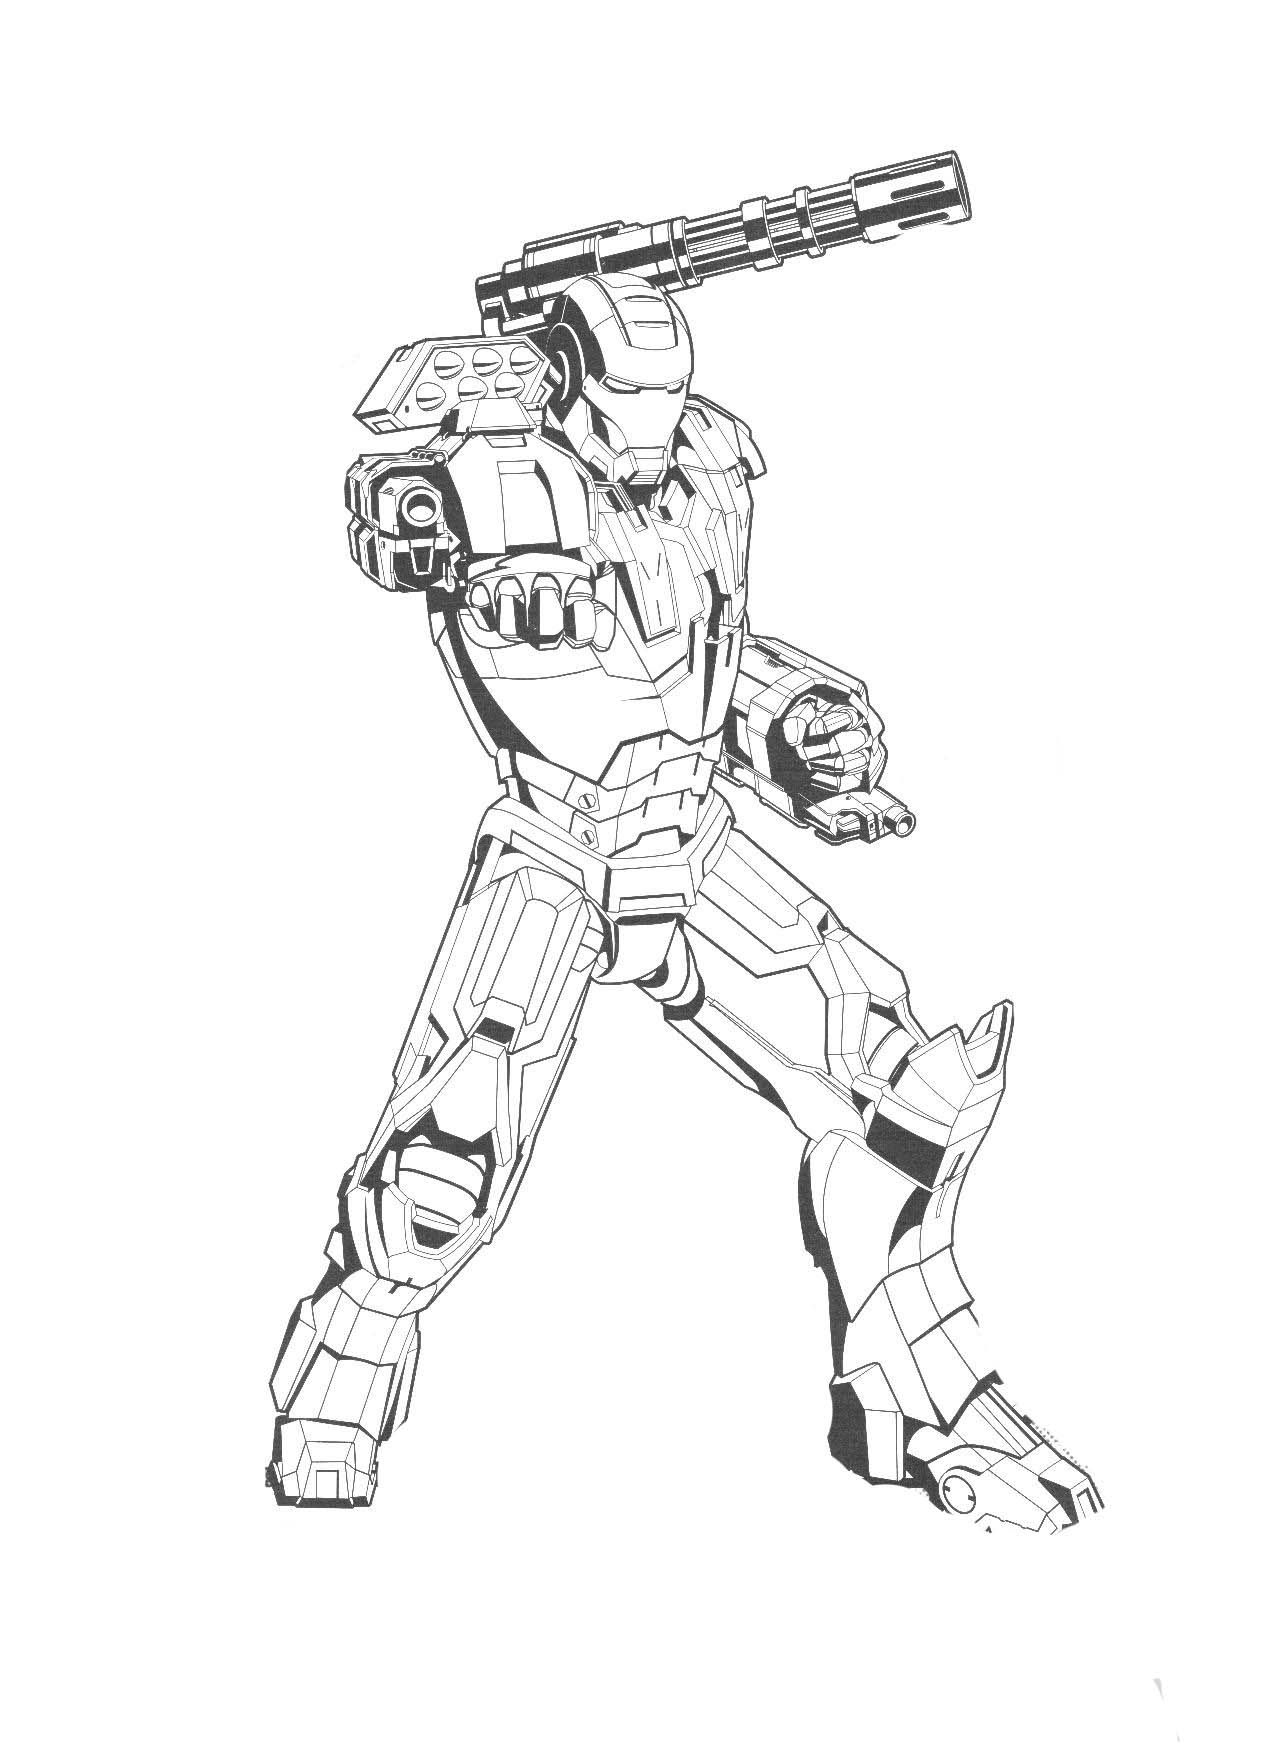 Powerful Iron Man Coloring Page Jpg 1 275 1 755 Pixels Superhero Coloring Pages Avengers Coloring Pages Marvel Coloring